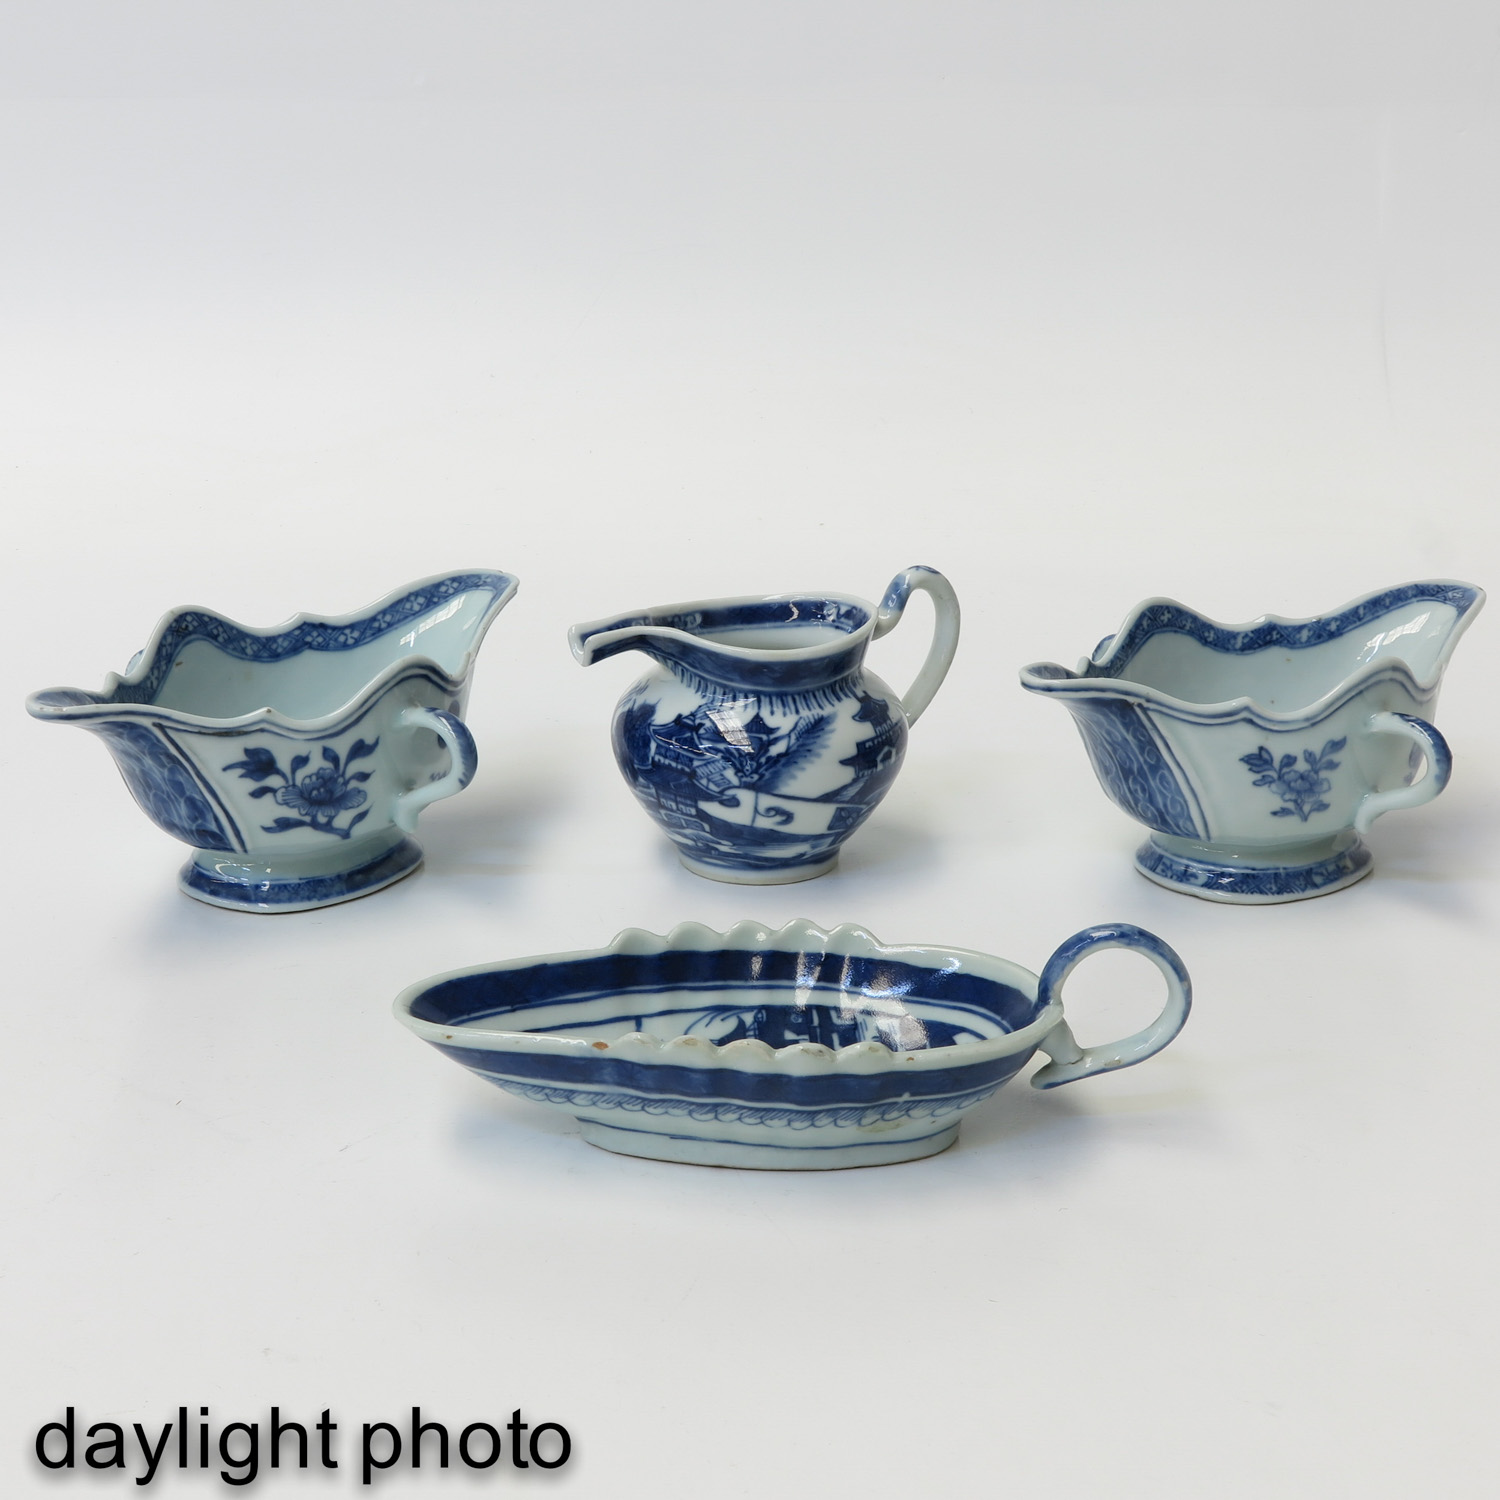 A Collection of Porcelain - Image 7 of 10